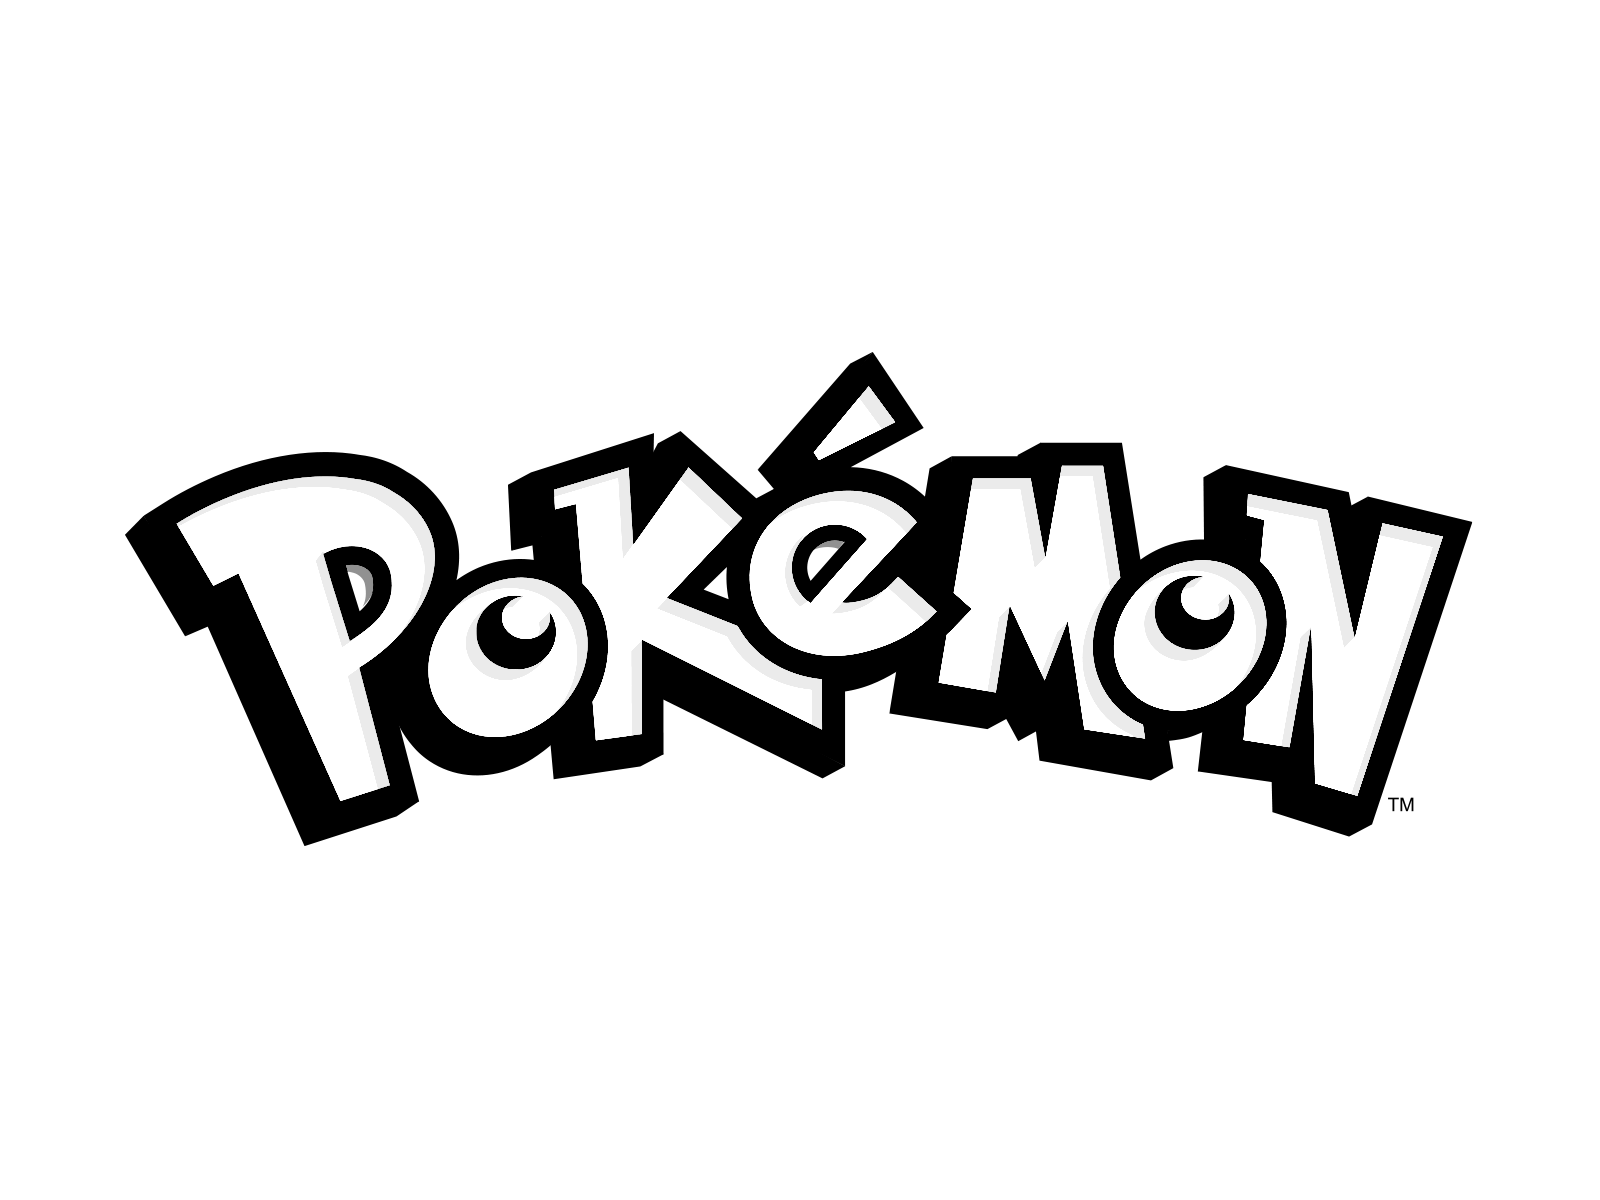 Pokemon logo clipart clipart images gallery for free.